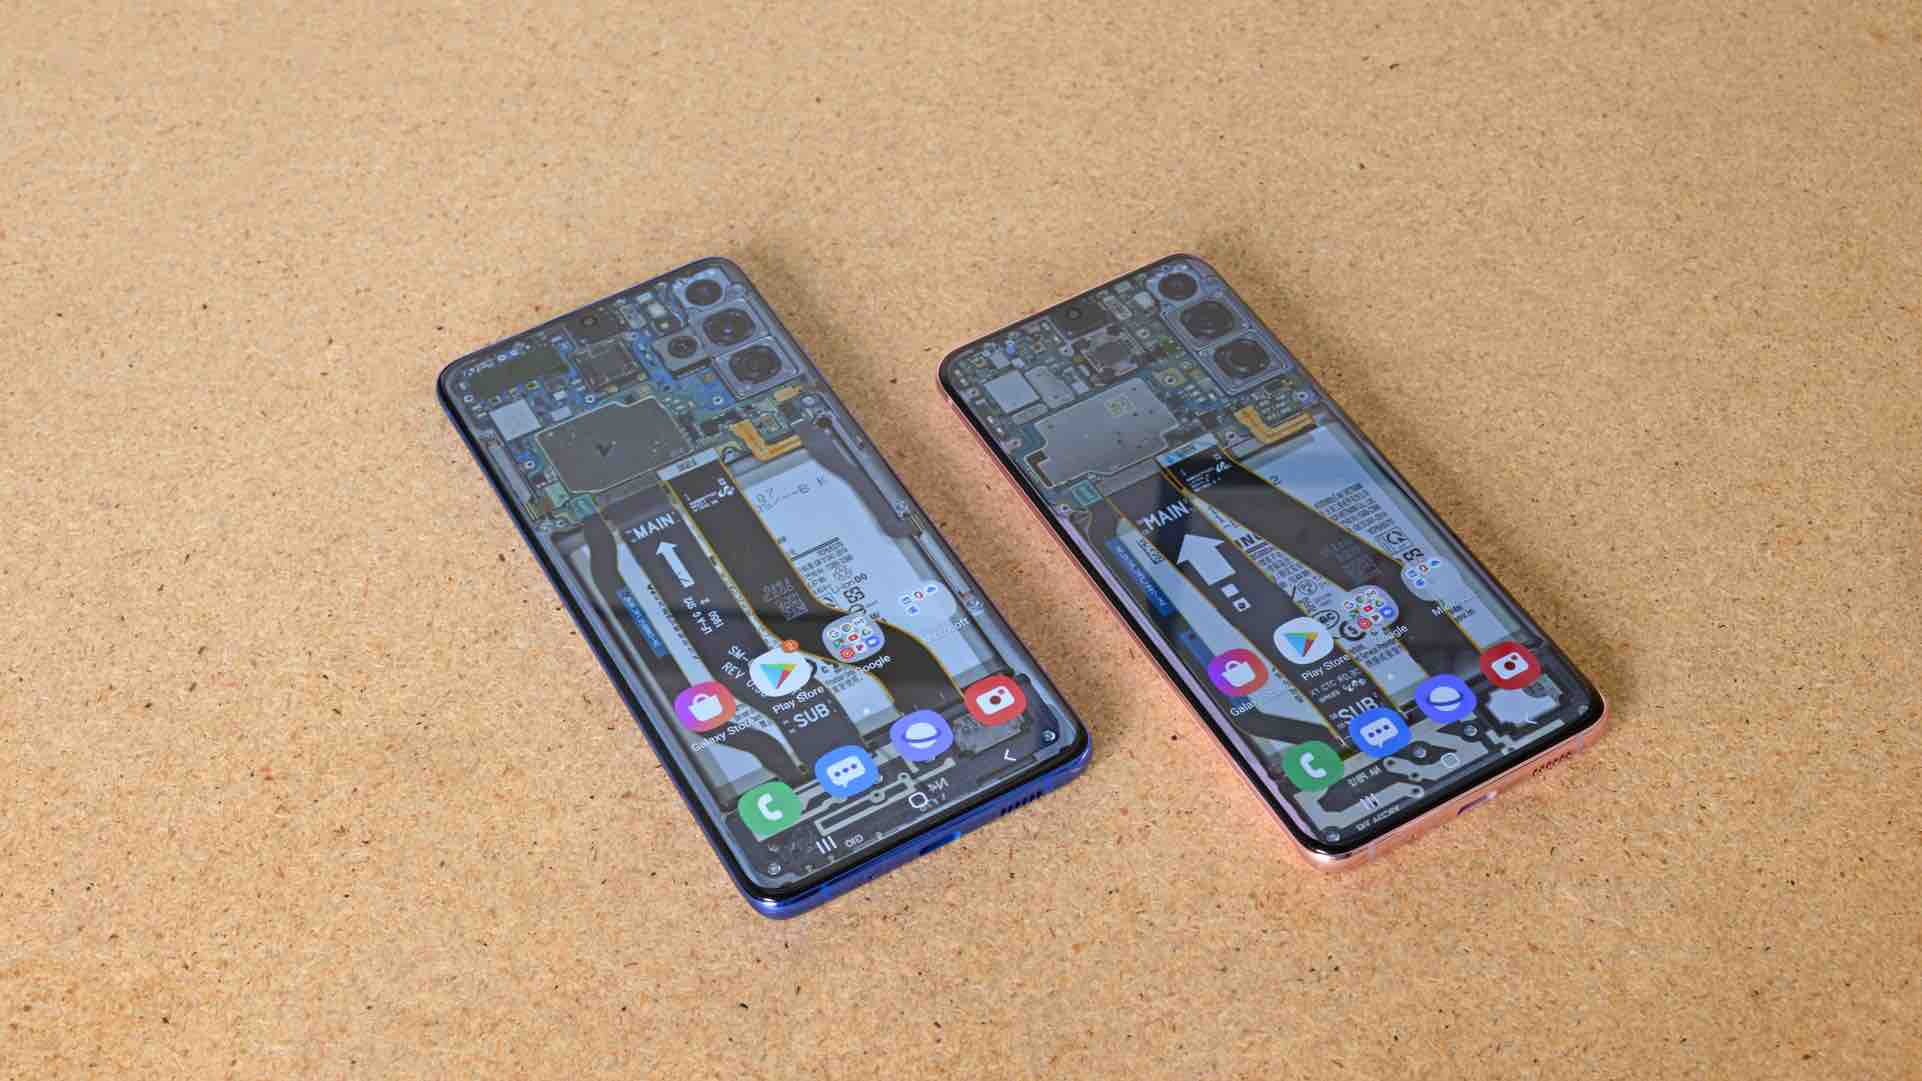 Galaxy S20 And S20 With Internals Wallpapers Vnutrennosti Samsung Galaxy A 30 3076415 Hd Wallpaper Backgrounds Download